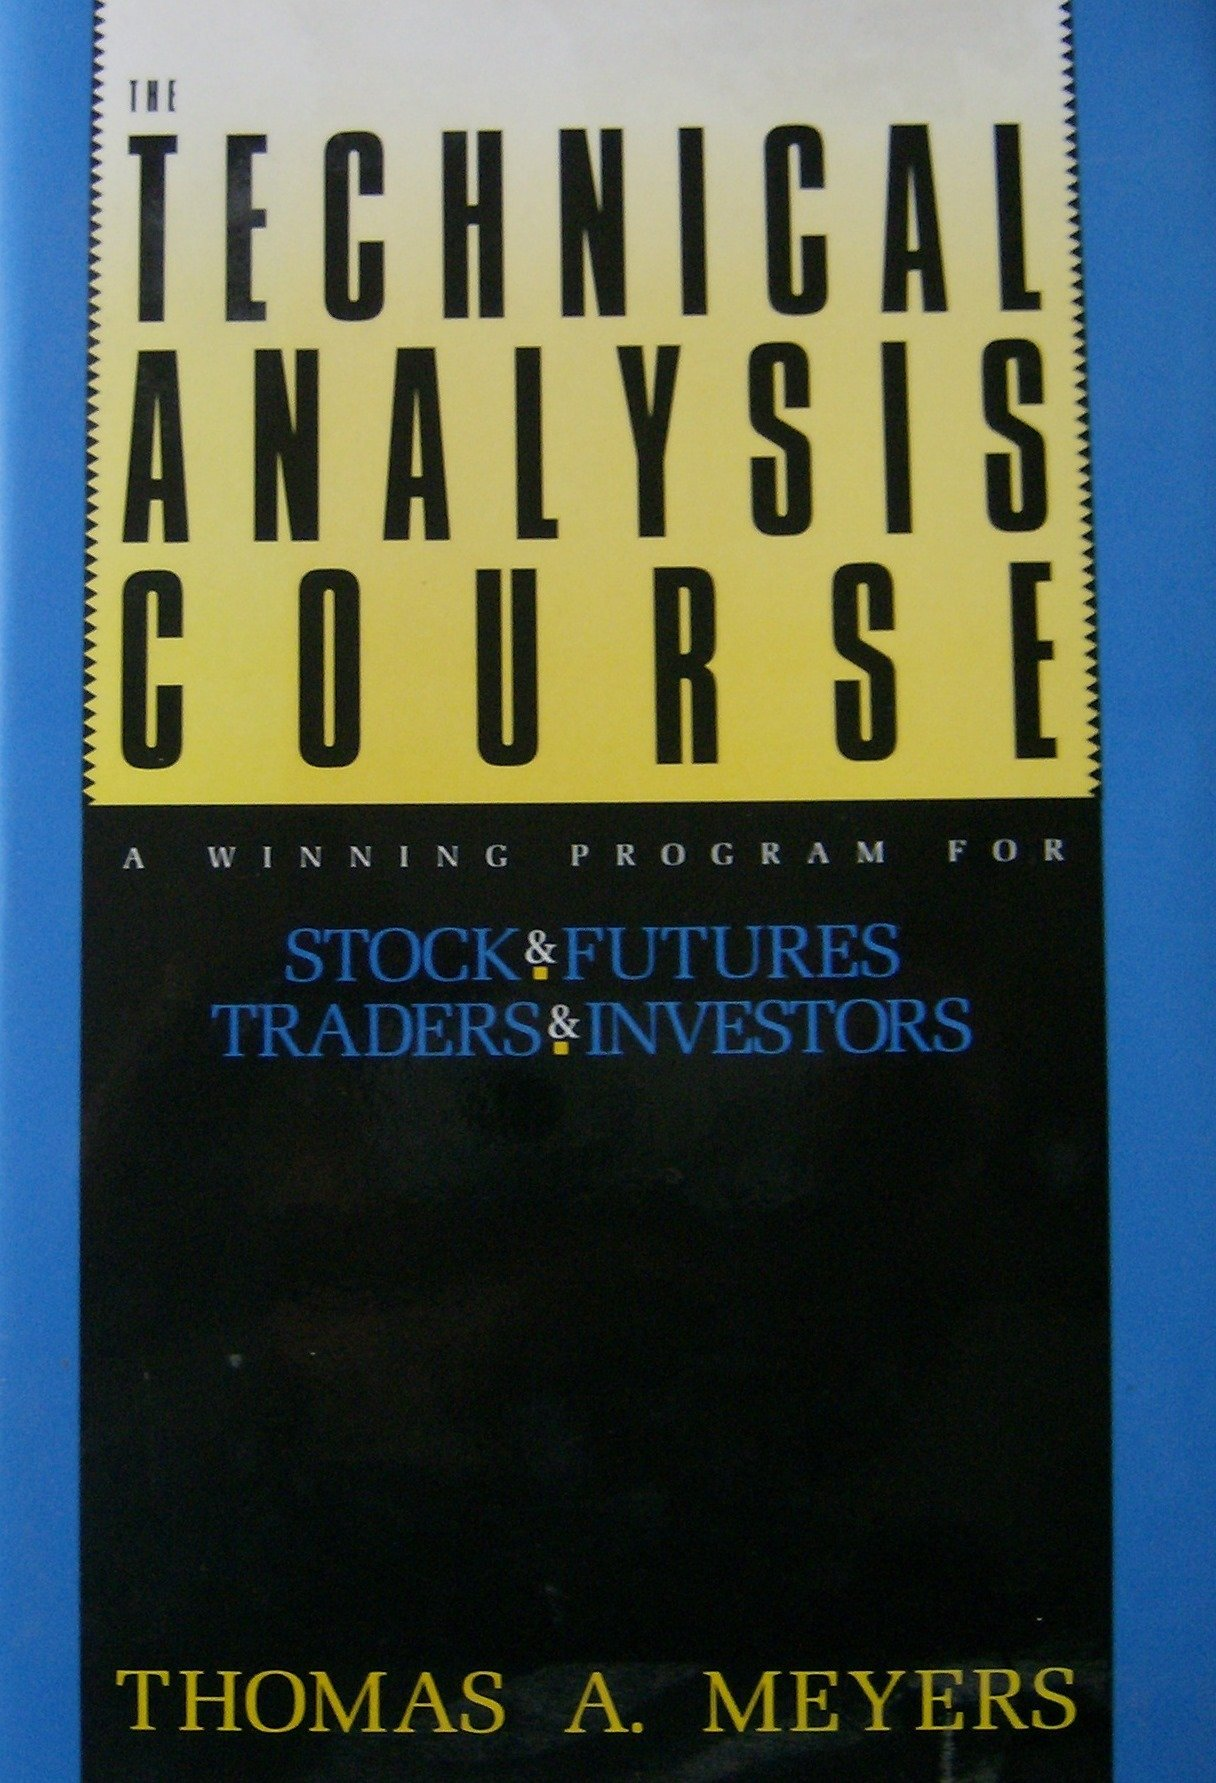 Technical Analysis Course: A Winning Program for Stock and Futures Traders and Investors